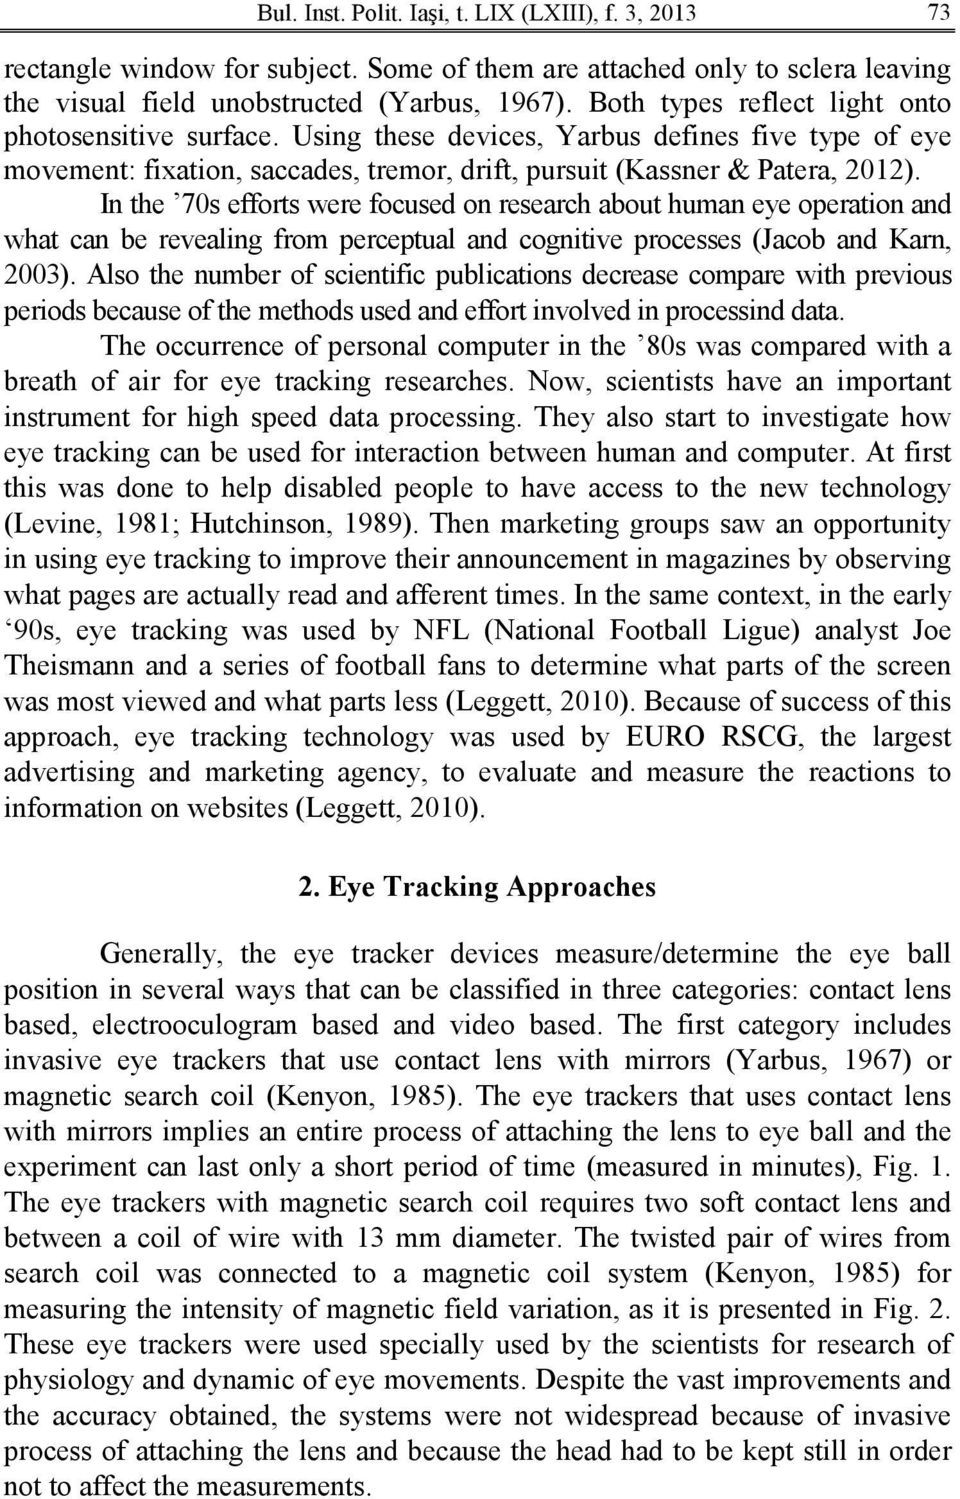 In the 70s efforts were focused on research about human eye operation and what can be revealing from perceptual and cognitive processes (Jacob and Karn, 2003).